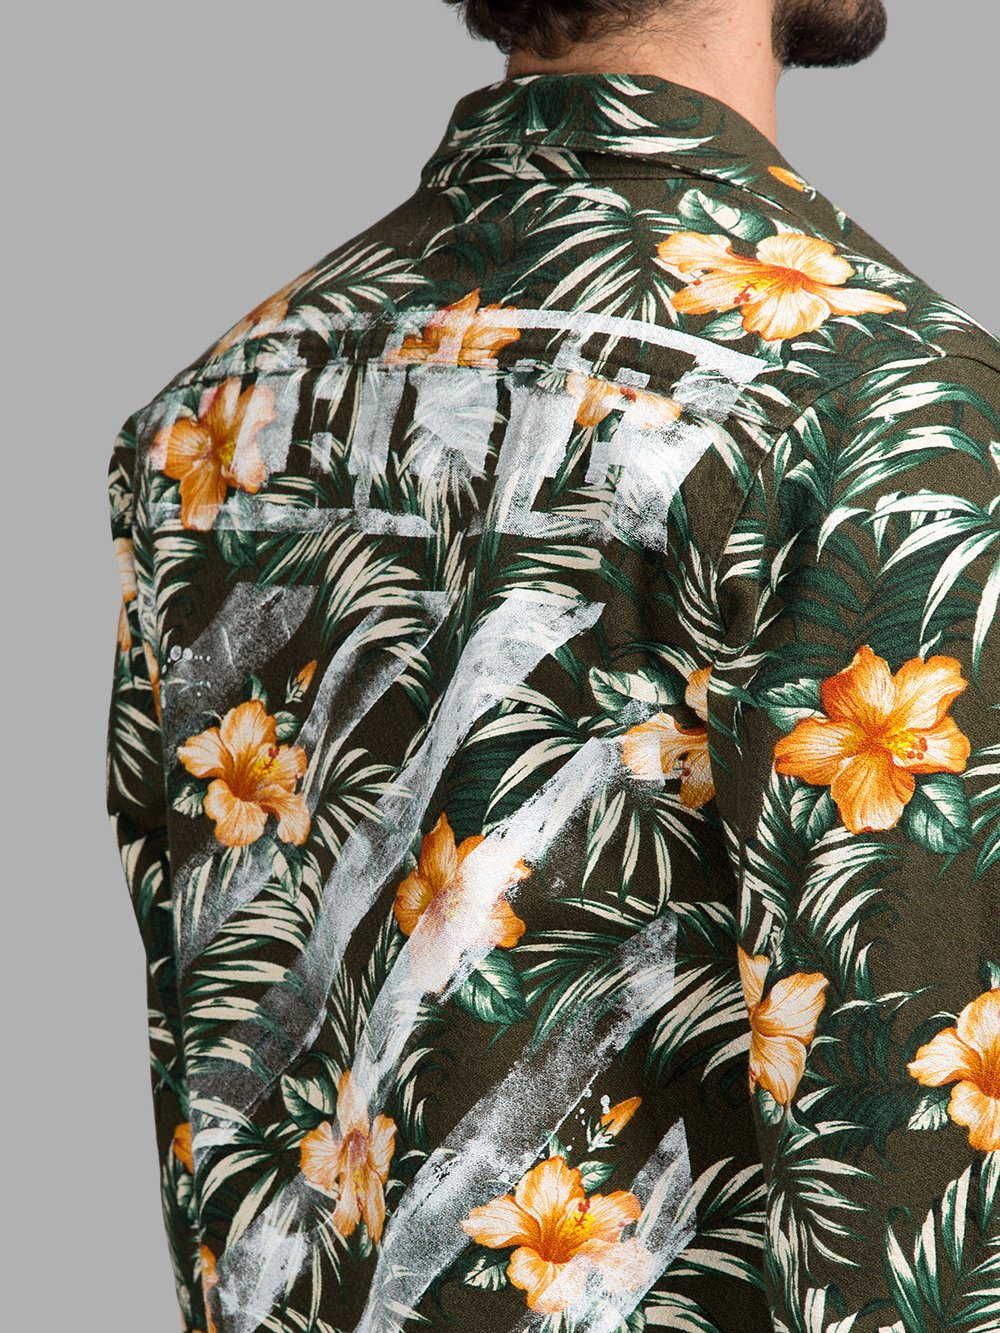 Off white c o virgil abloh ss15 floral shirt the drop for Off white virgil abloh